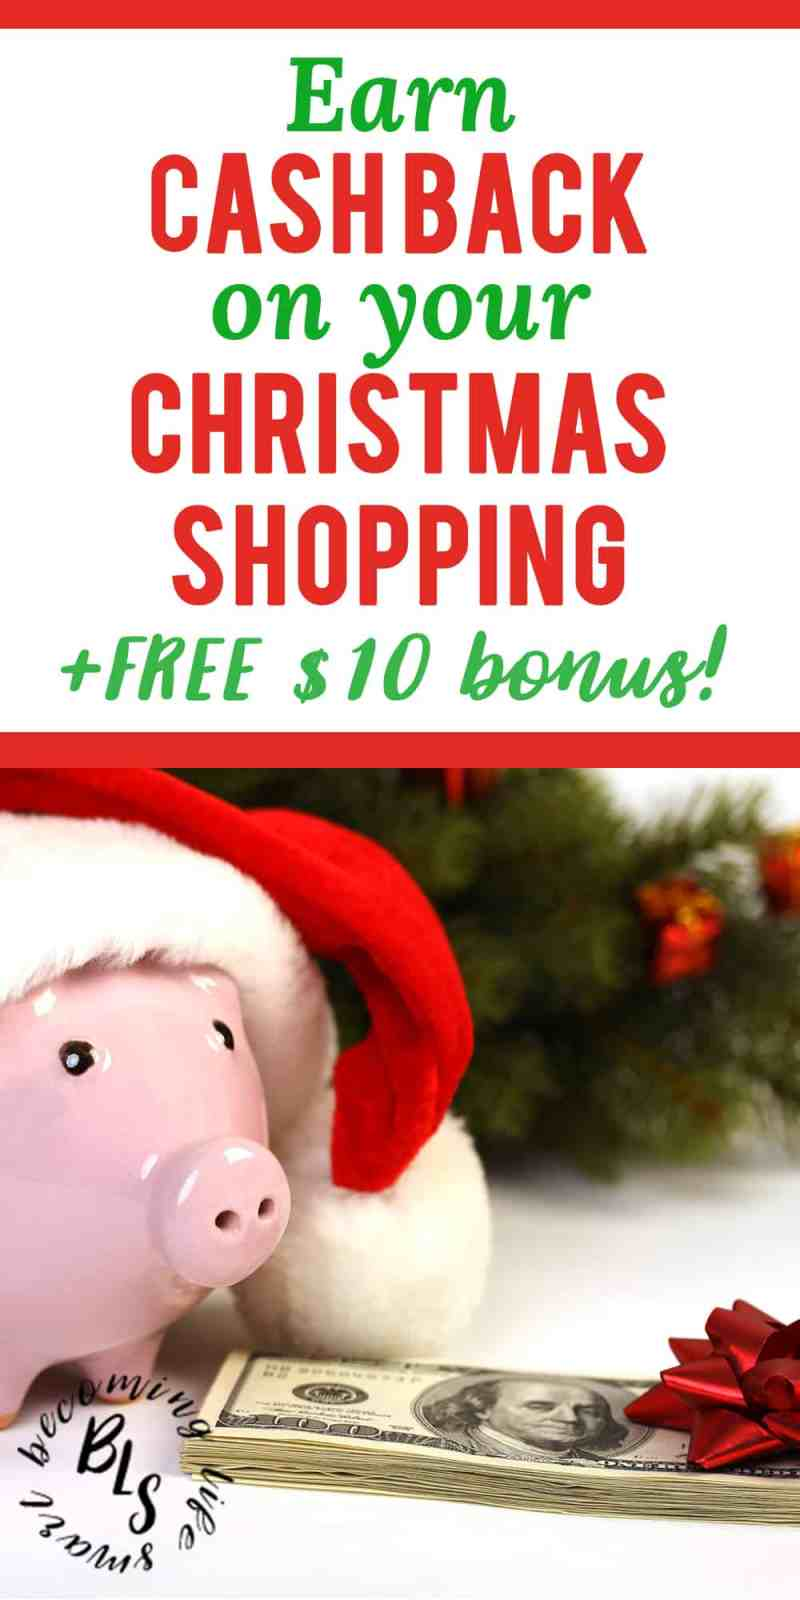 These are great Ebates shopping tips! I can't believe you can make money shopping online just for using Ebates. | Ebates tips saving money | save money Christmas shopping | save money Christmas tips | #christmasgifts #moneytips #christmas #shopping | www.becominglifesmart.com